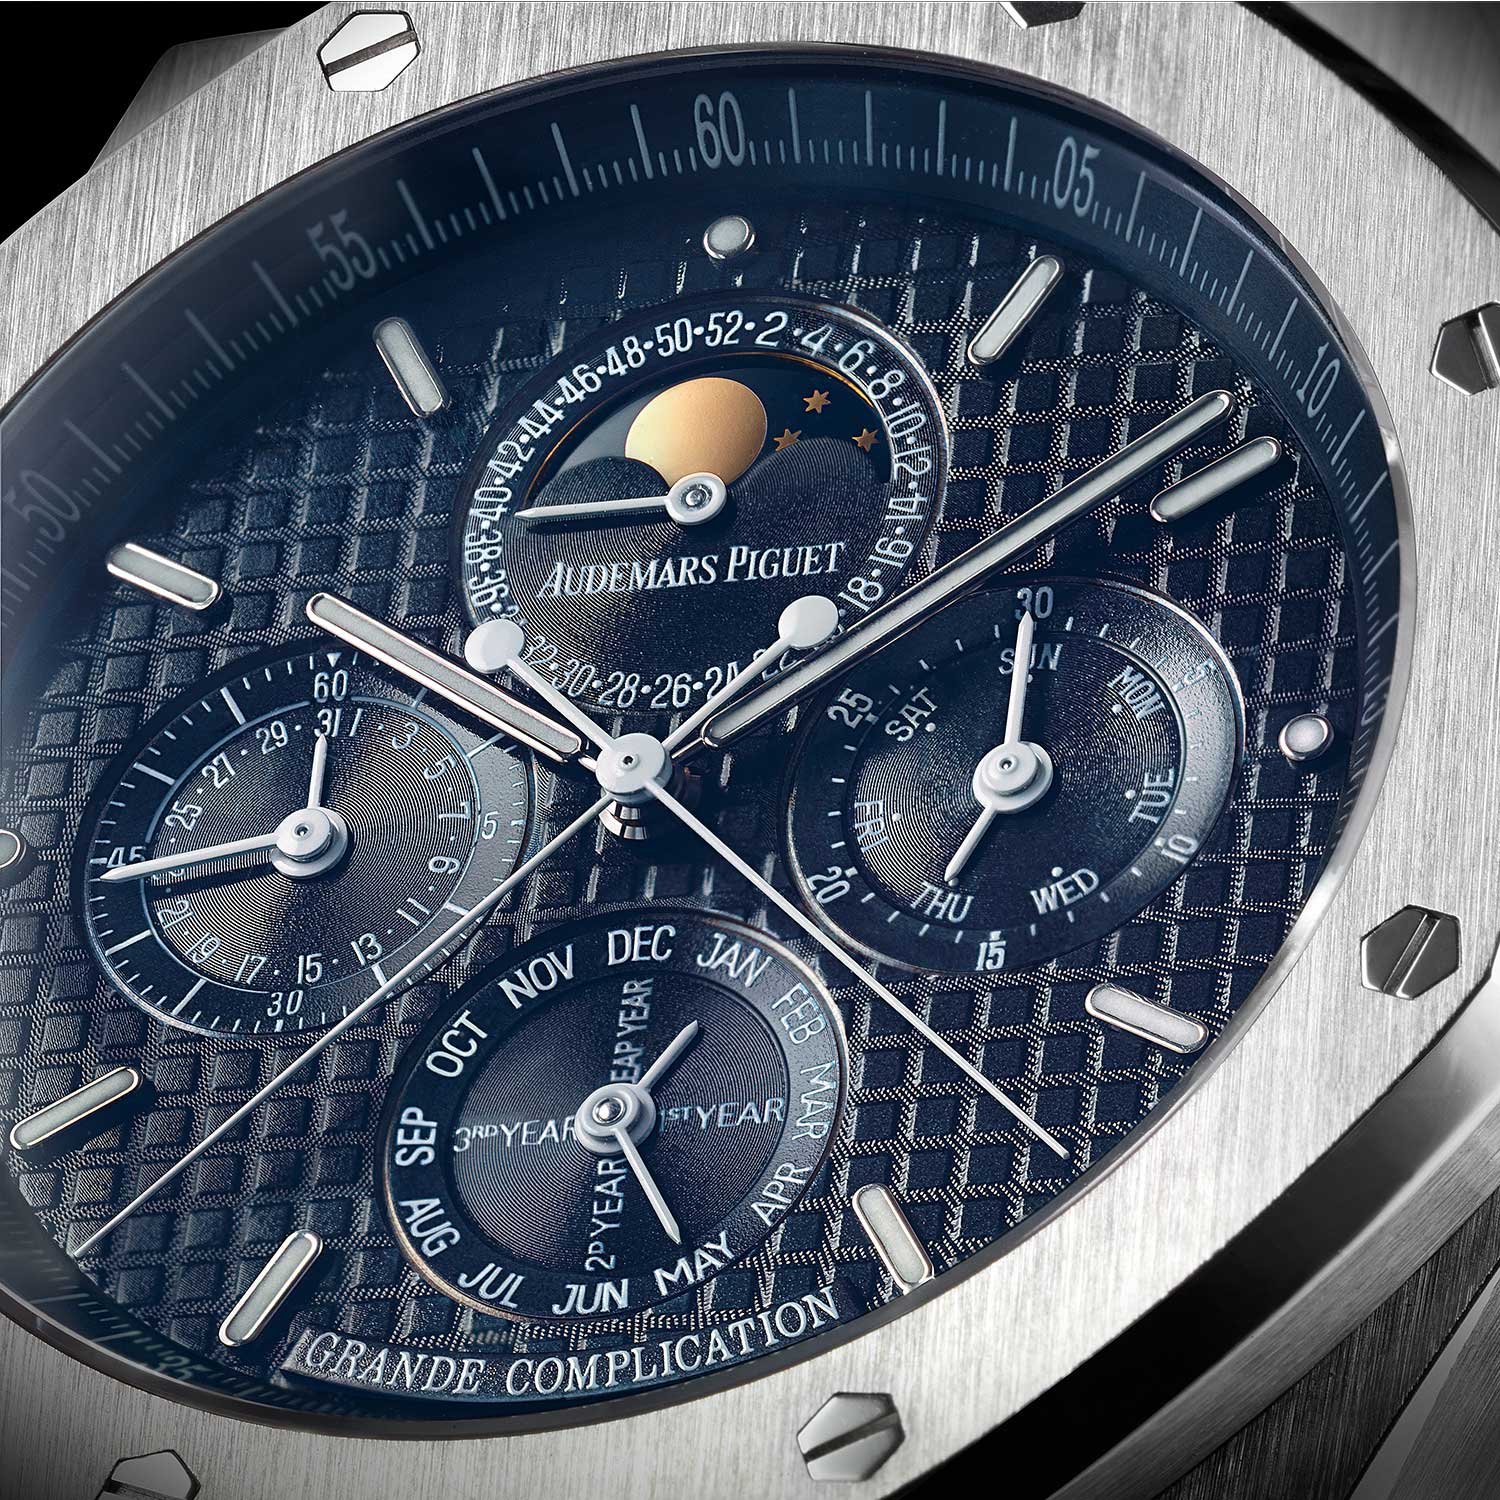 The reference 25865 was an unusual addition to the Royal Oak Perpetual Calendar family, it incorporated a split-seconds chronograph and minute repeater complication along with the perpetual calendar